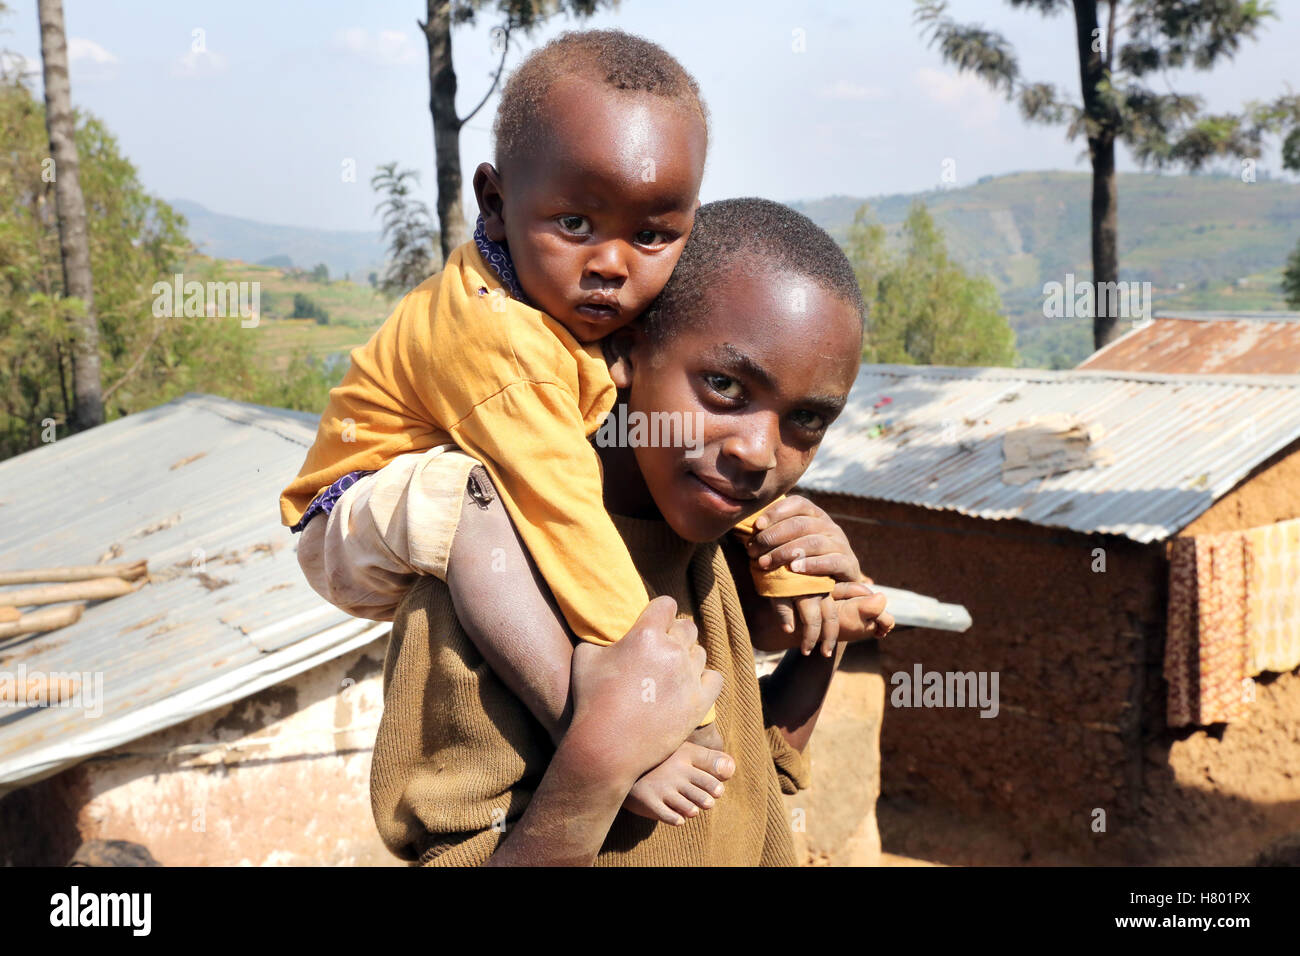 Refugee children from the Congo in the UNHCR Kigeme refugee camp, diocese of Gikongoro, Rwanda, Africa - Stock Image